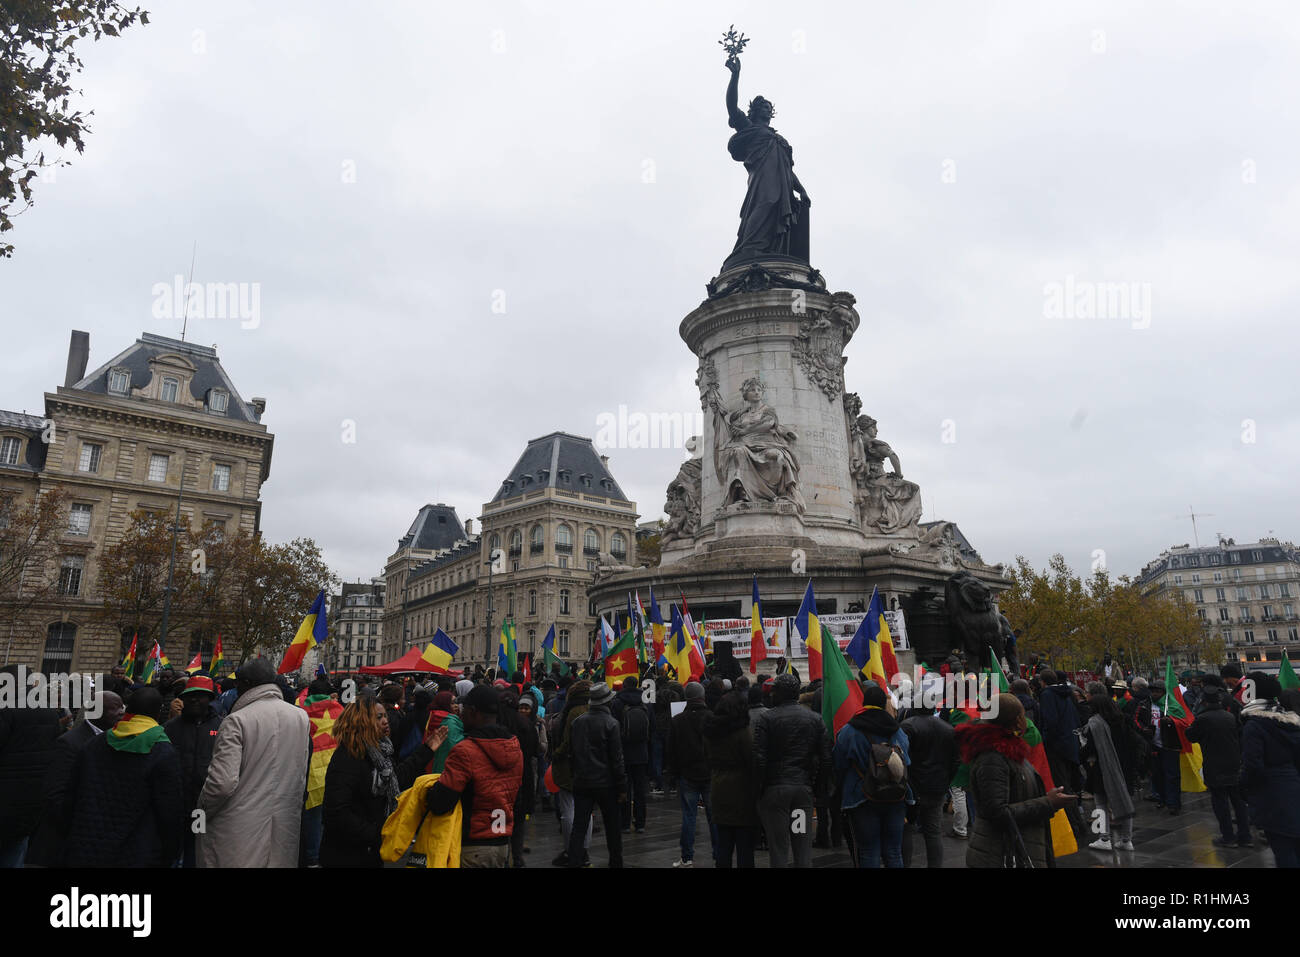 November 10, 2018 - Paris, France: Africans living in France gather in Place de la Republique to protest against the strong relationships between the French government and several African heads of state described as dictators.  Rassemblement place de la Republique a Paris contre les dictateurs africains soutenus par la France. *** FRANCE OUT / NO SALES TO FRENCH MEDIA *** - Stock Image